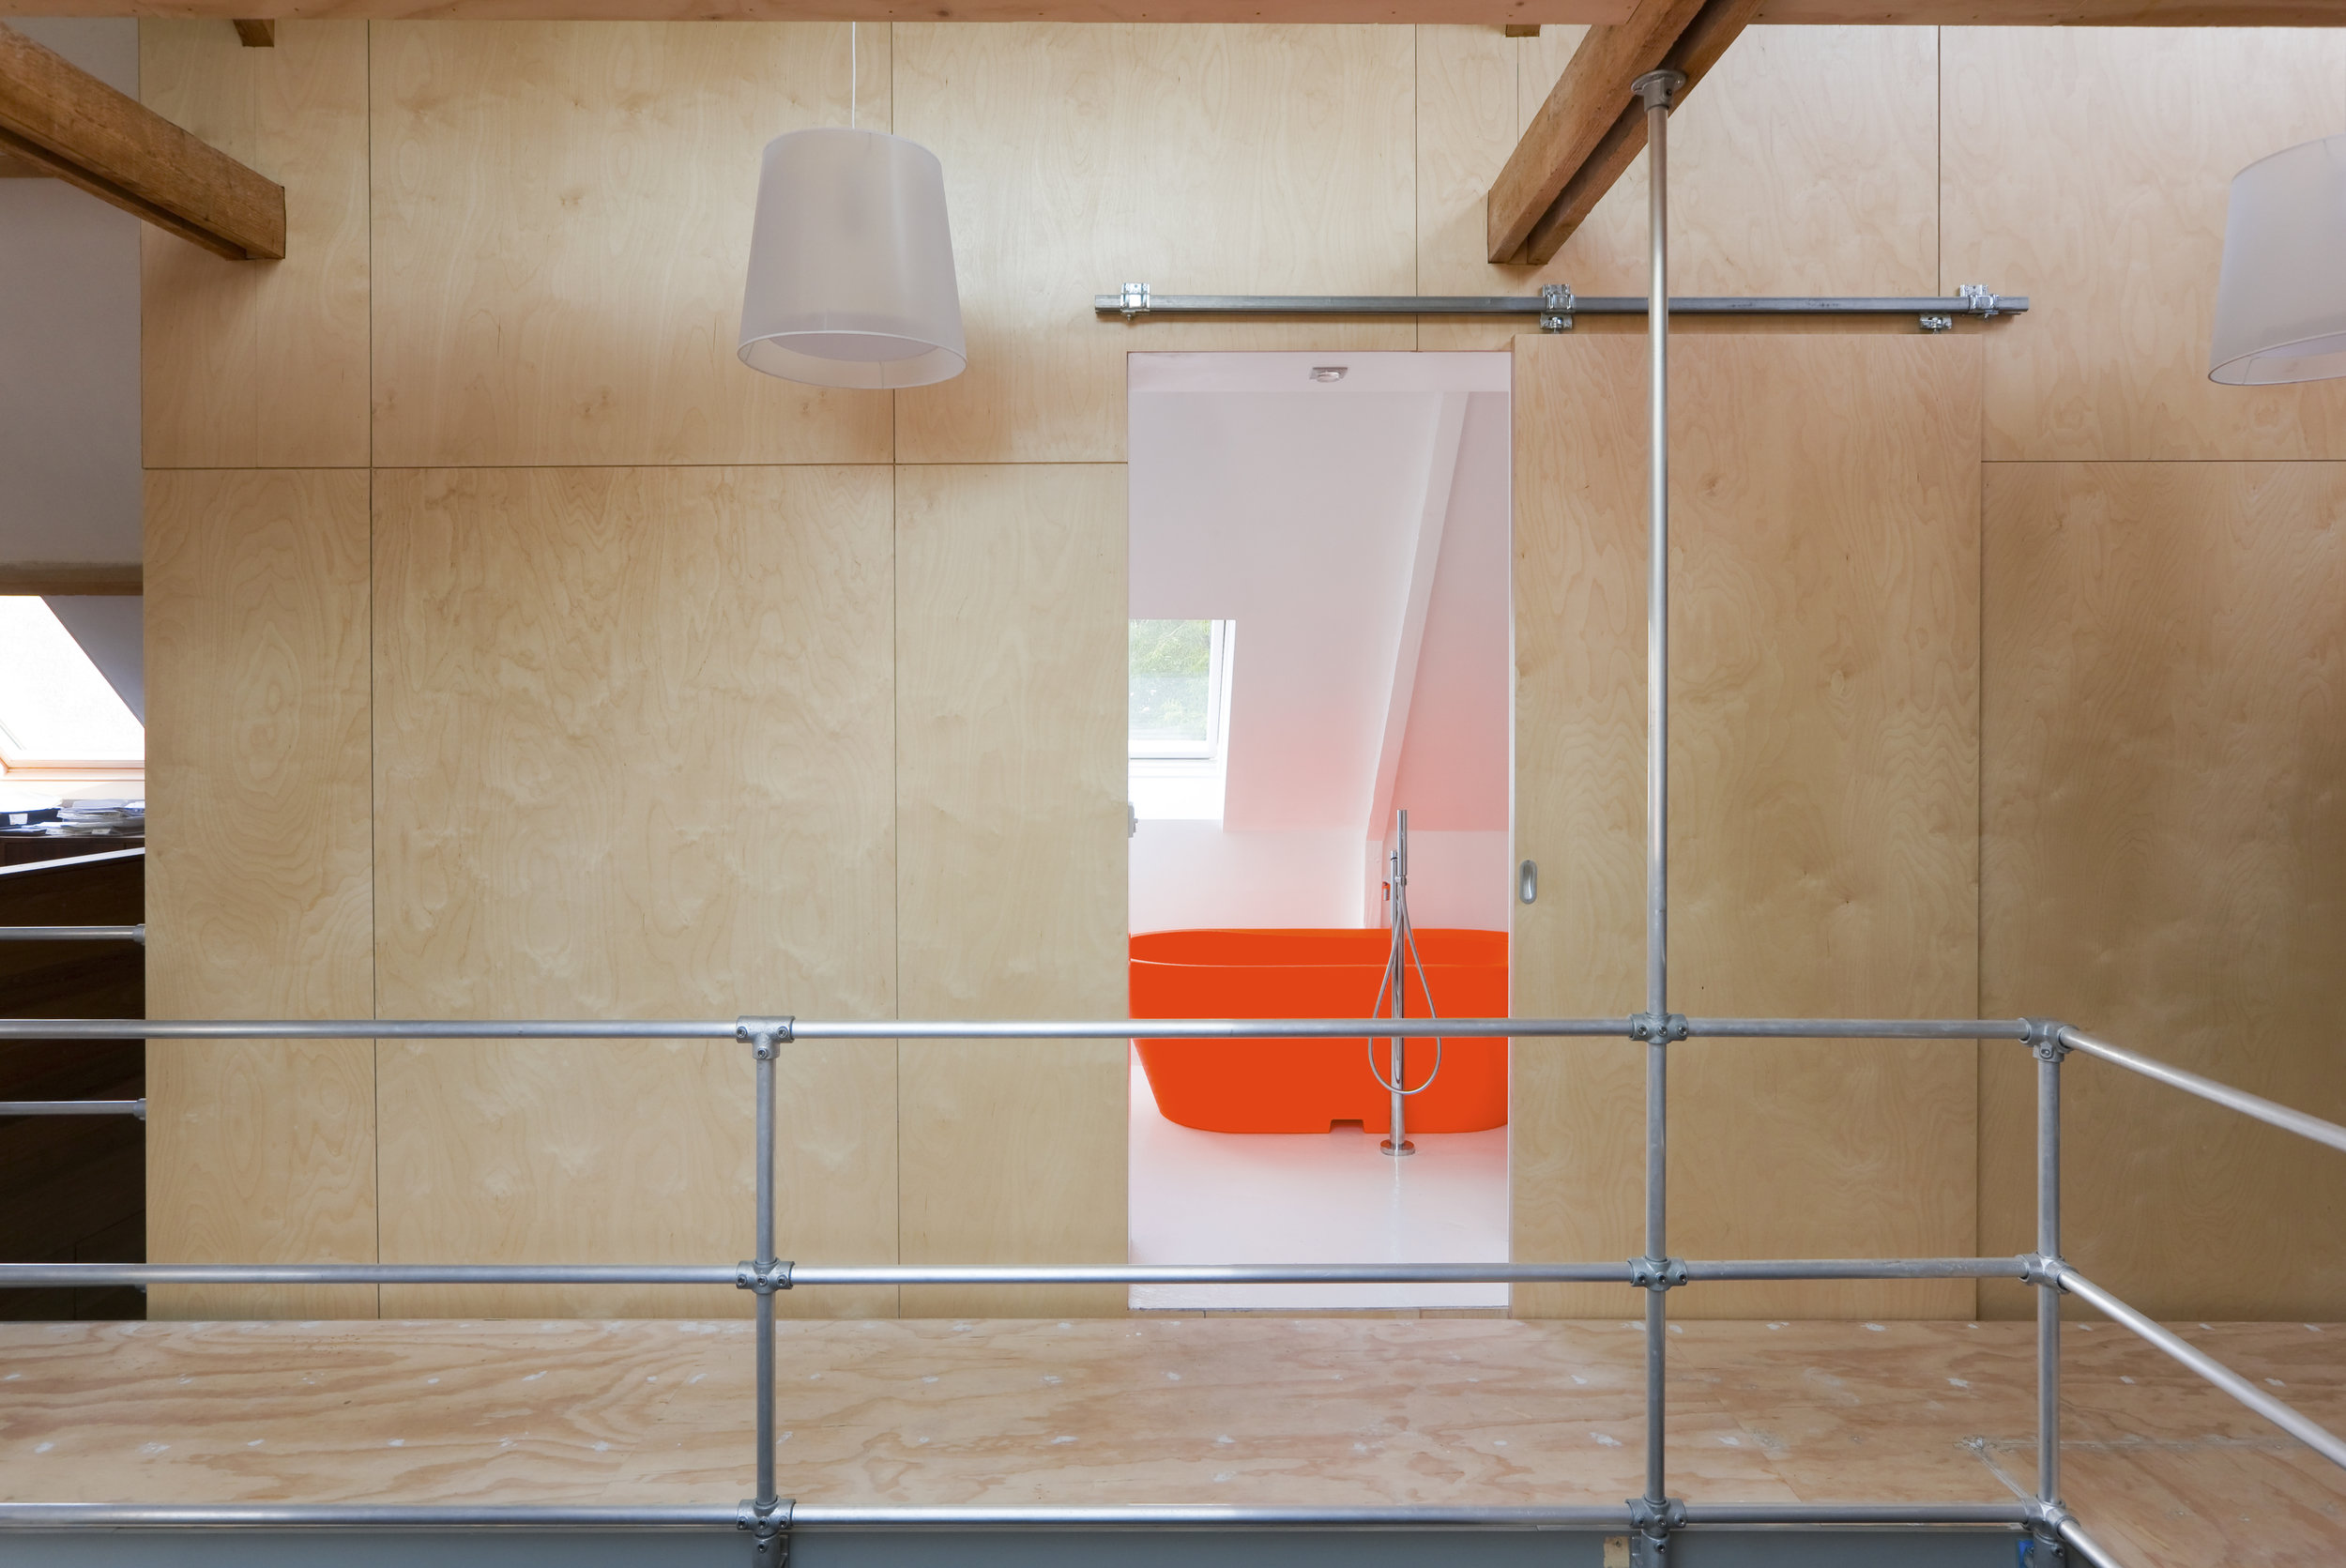 the element is clad with birch fineer, the bathroom inside is kept completely white (except for the bathtub ofcourse)